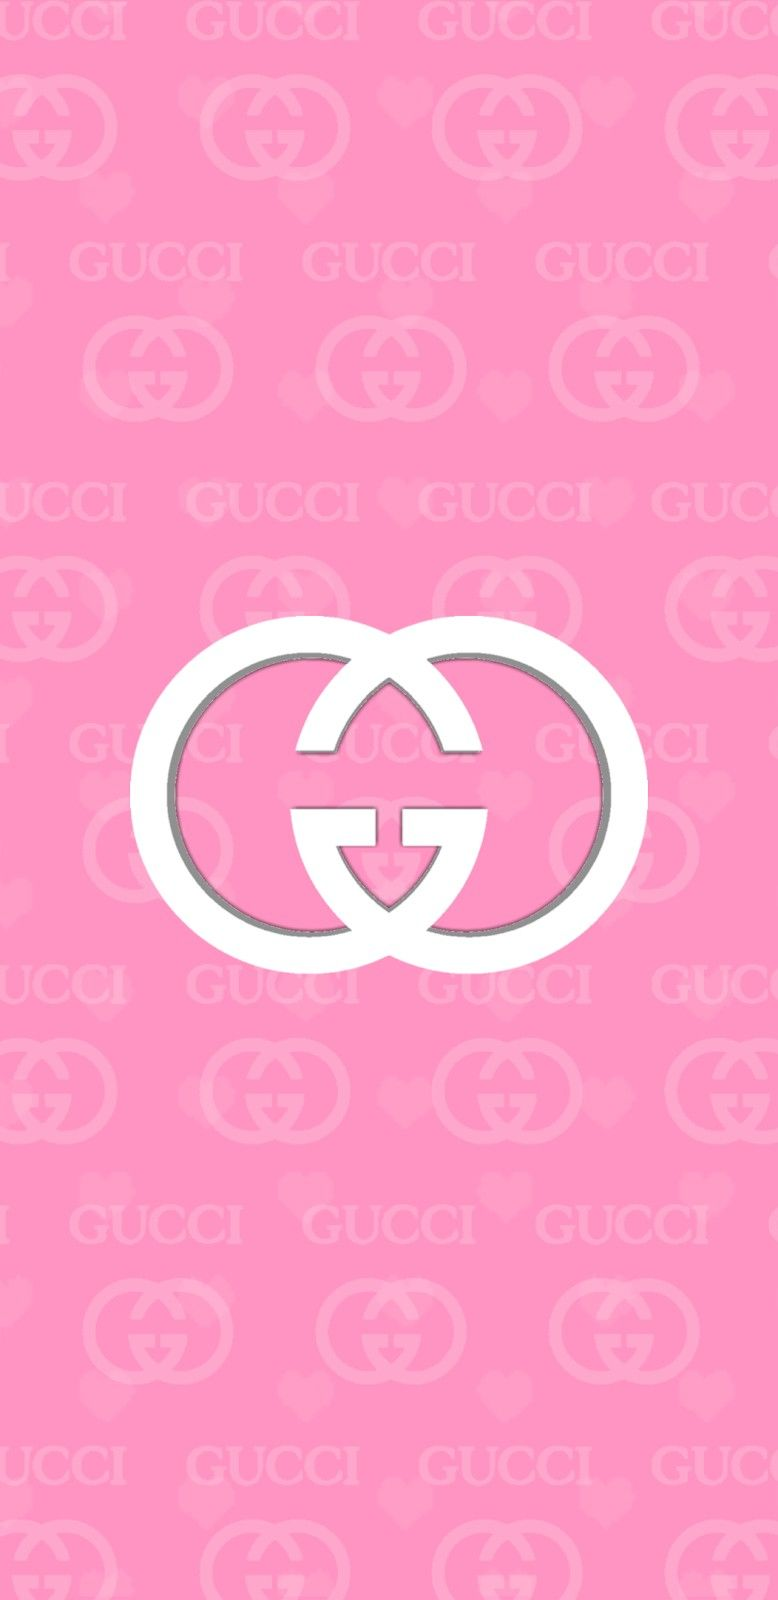 Dazzlemydroid Wallpaper Room Posters Gucci